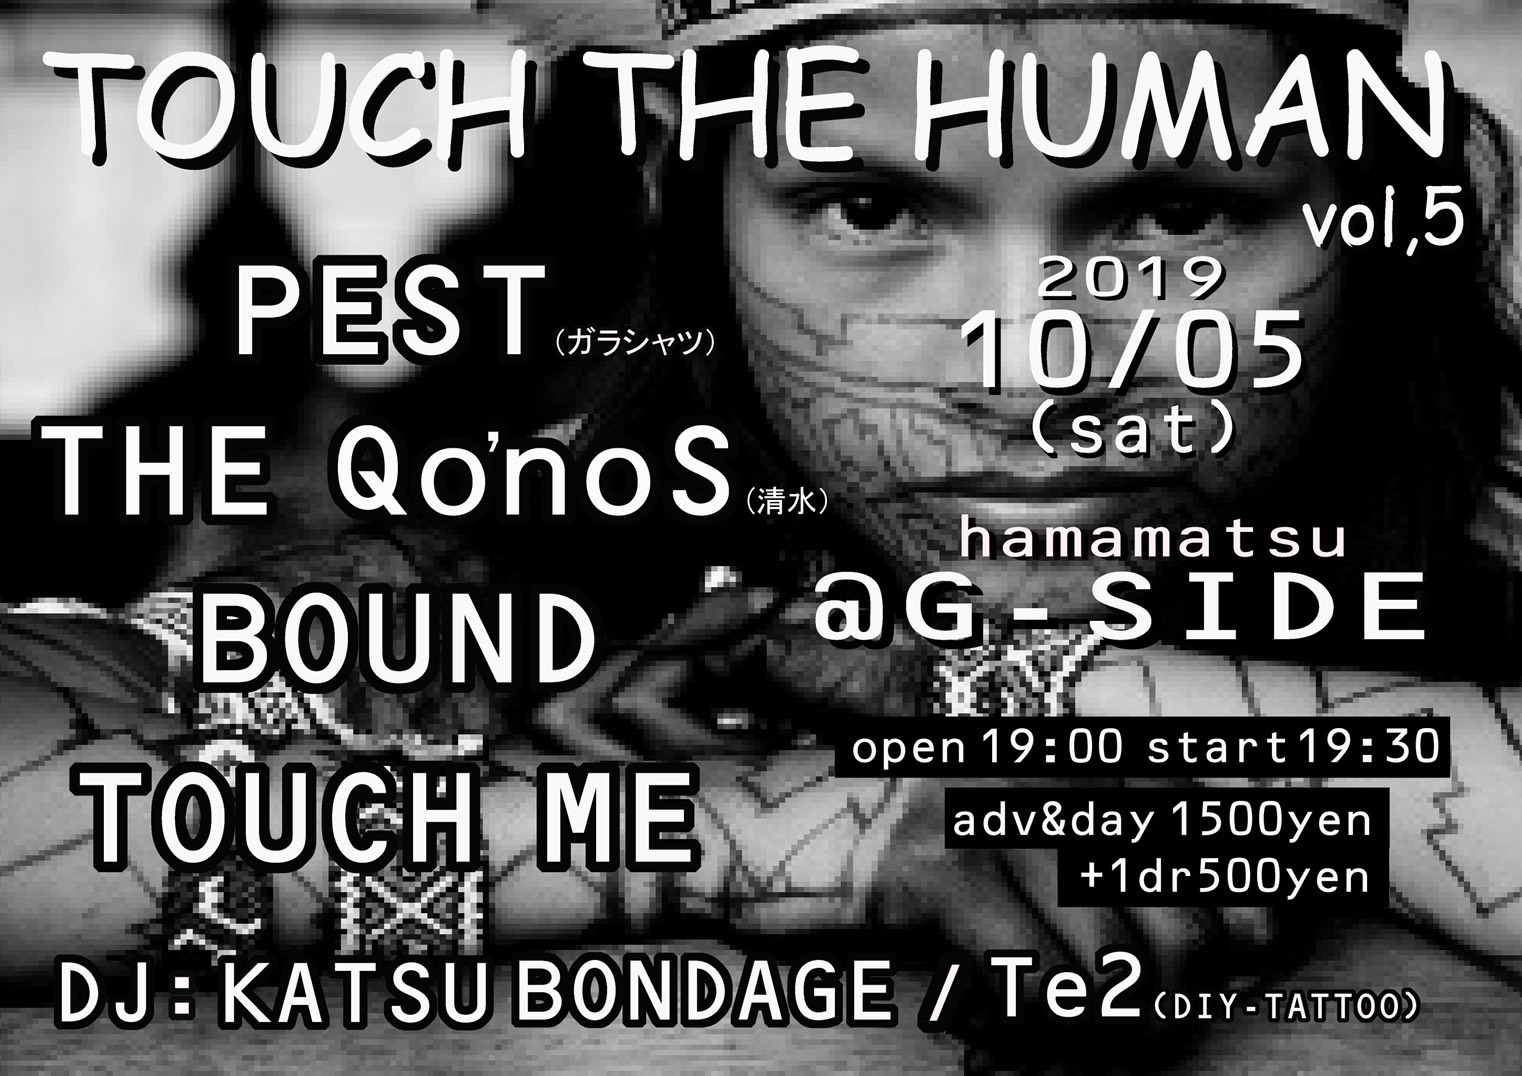 TOUCH THE HUMAN vol.5